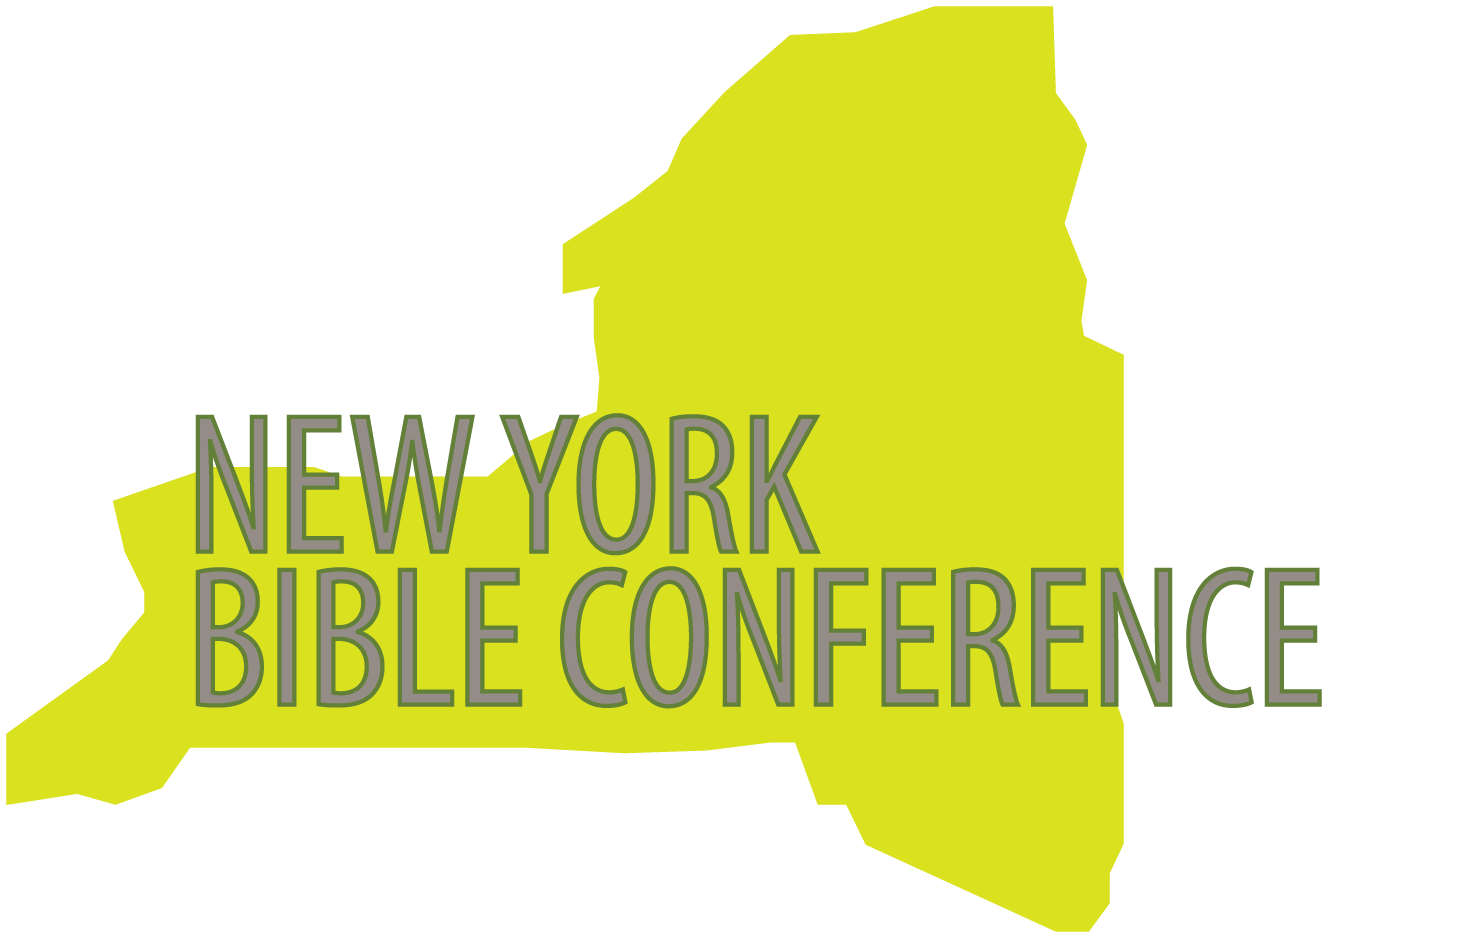 New York Bible Conference